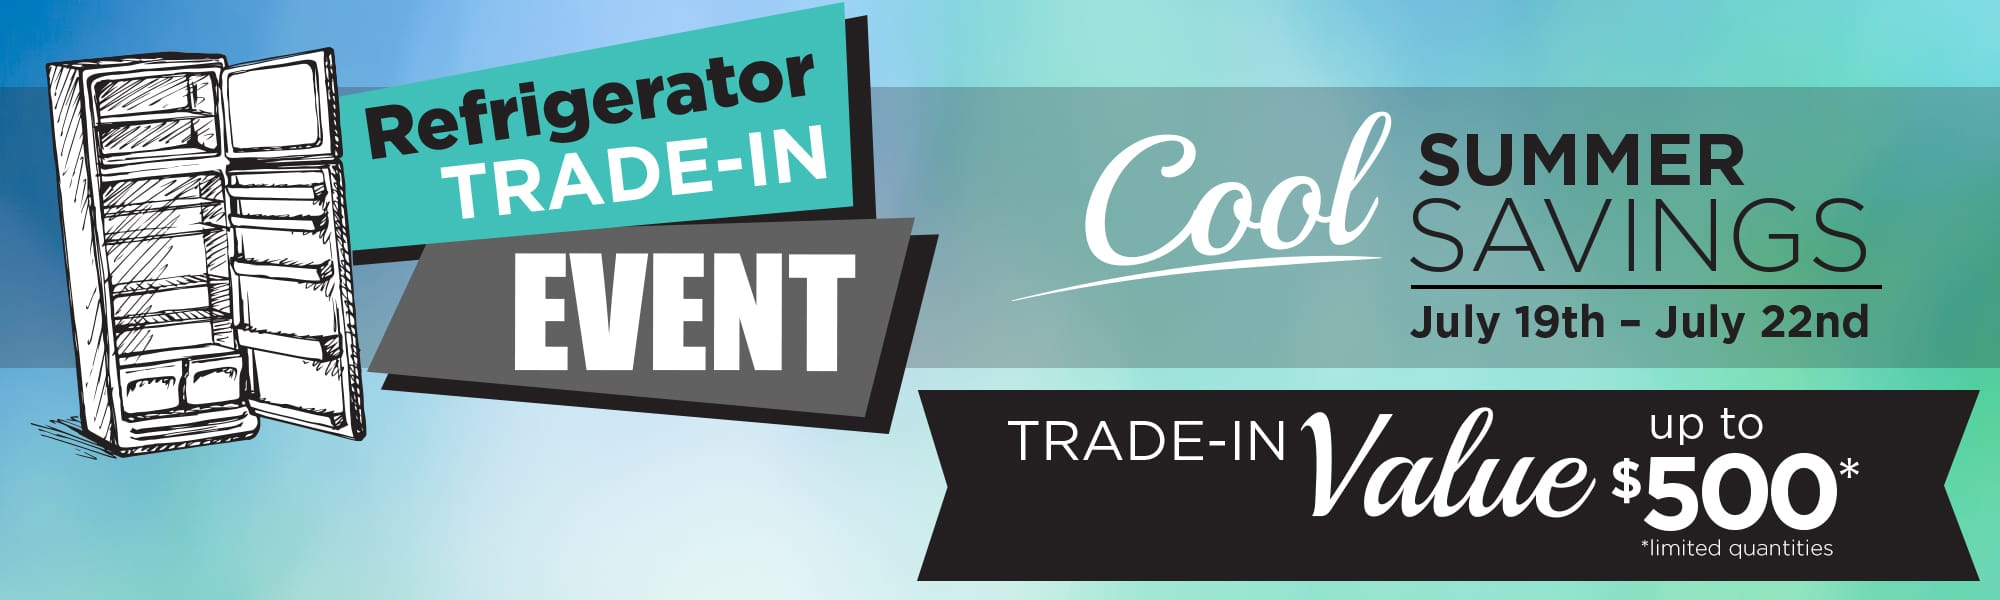 refrigerator trade-in event Banner